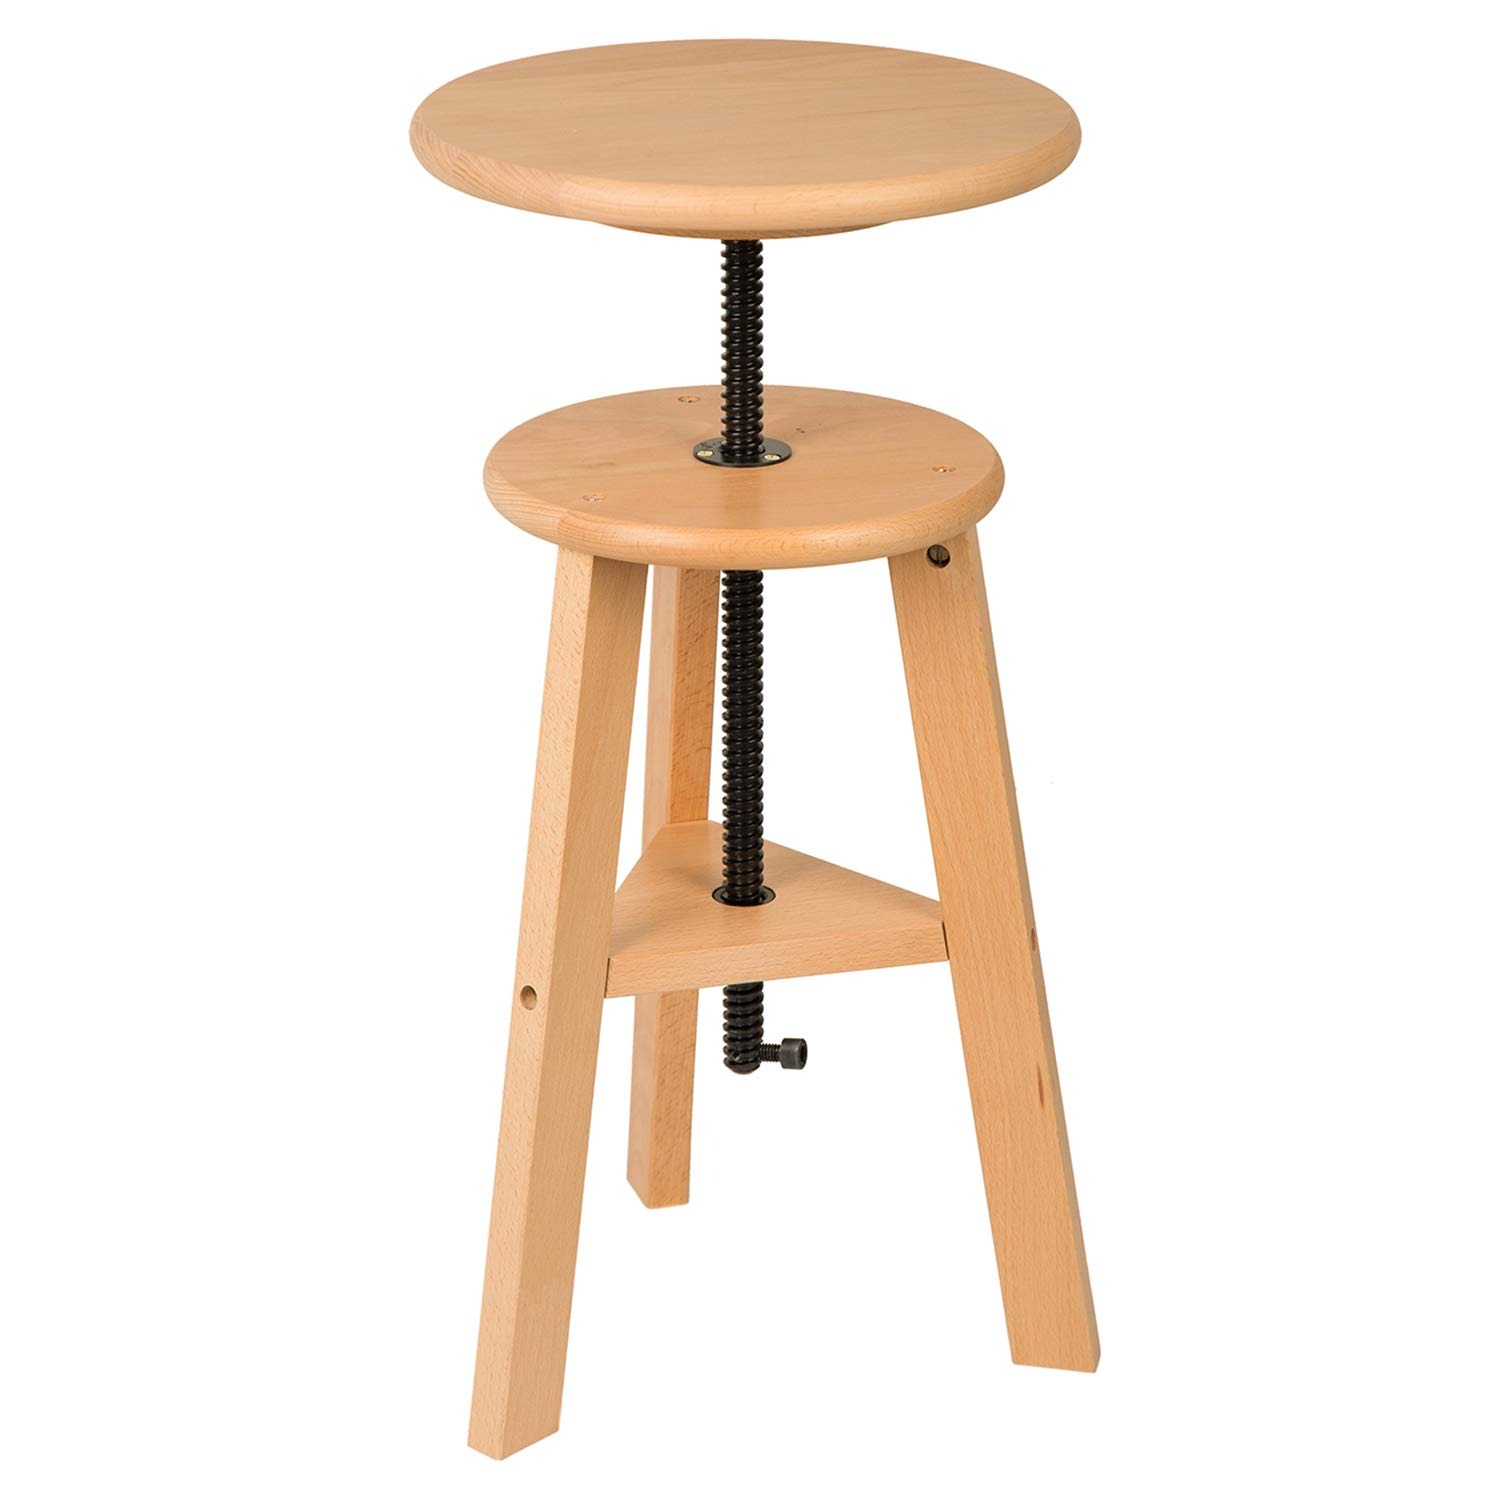 Wooden Drafting Stool with Adjustable Height by MEEDEN – Wood Drafting Chair – Improve Productivity, Good for Spine – Up to 220 Lbs, German Beech